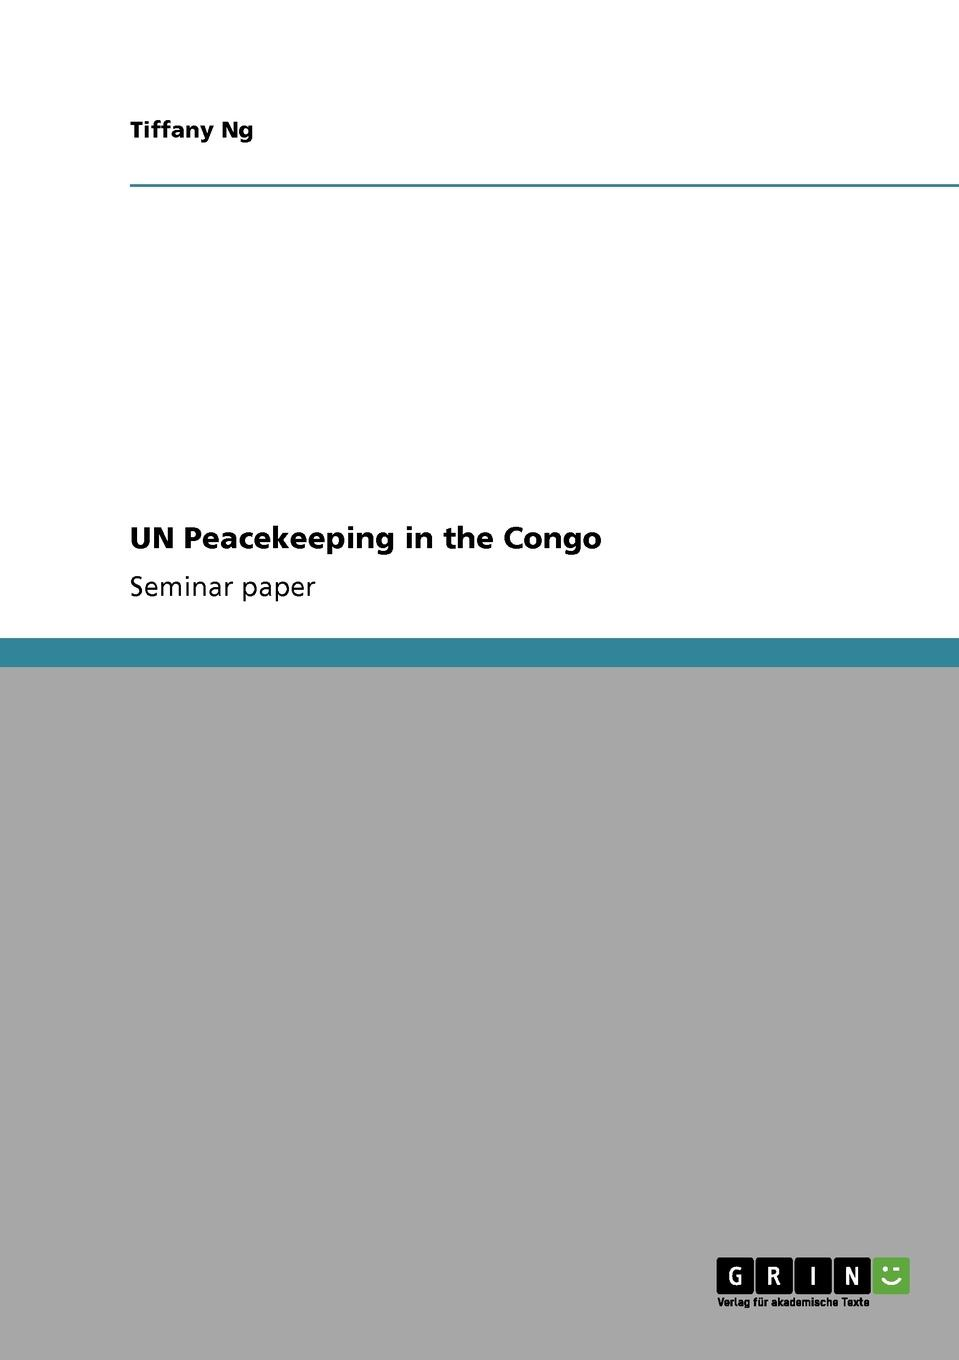 Tiffany Ng UN Peacekeeping in the Congo richard j thompson jr crystal clear the struggle for reliable communications technology in world war ii